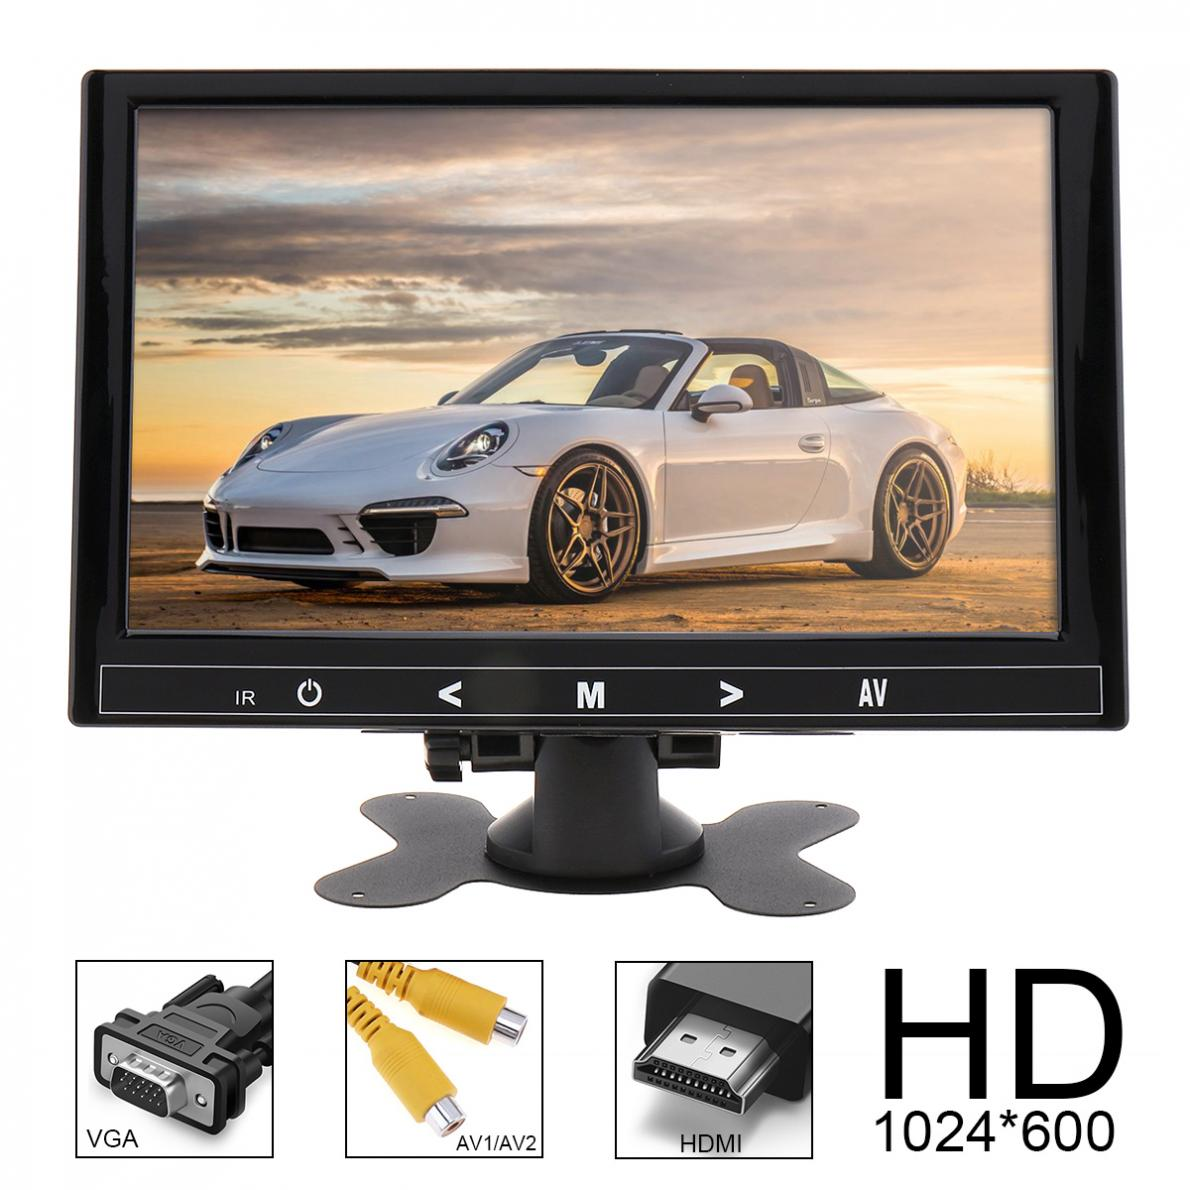 9 Inch 16:9 HD 1024*600 TFT LCD Car Rear View Monitor 2 Video Input DVD VCD Headrest Auto Monitor Support Audio Video HDMI VGA купить в Москве 2019